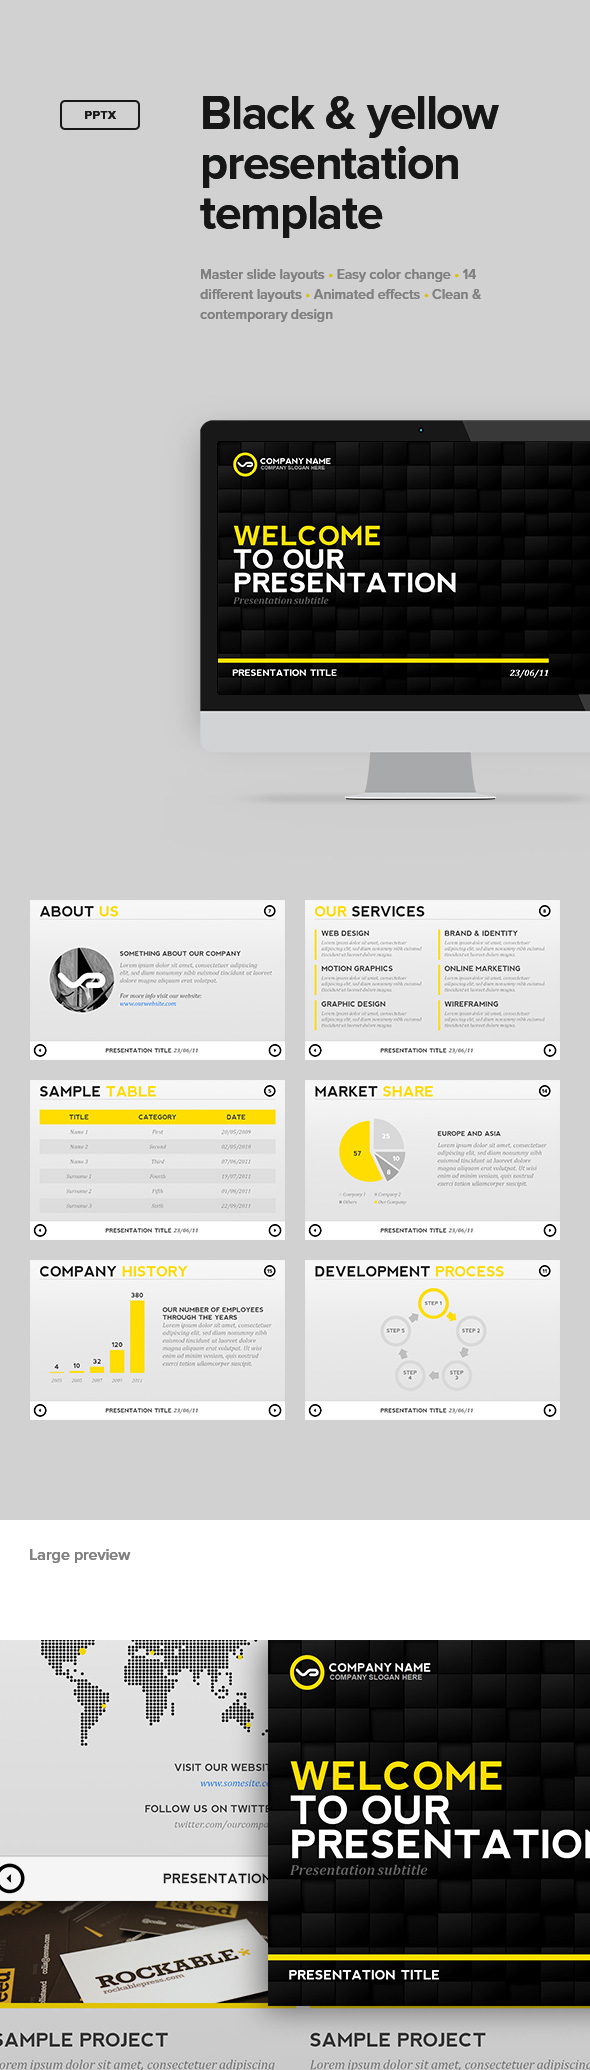 Black & Yellow Presentation Template - PowerPoint Templates Presentation Templates